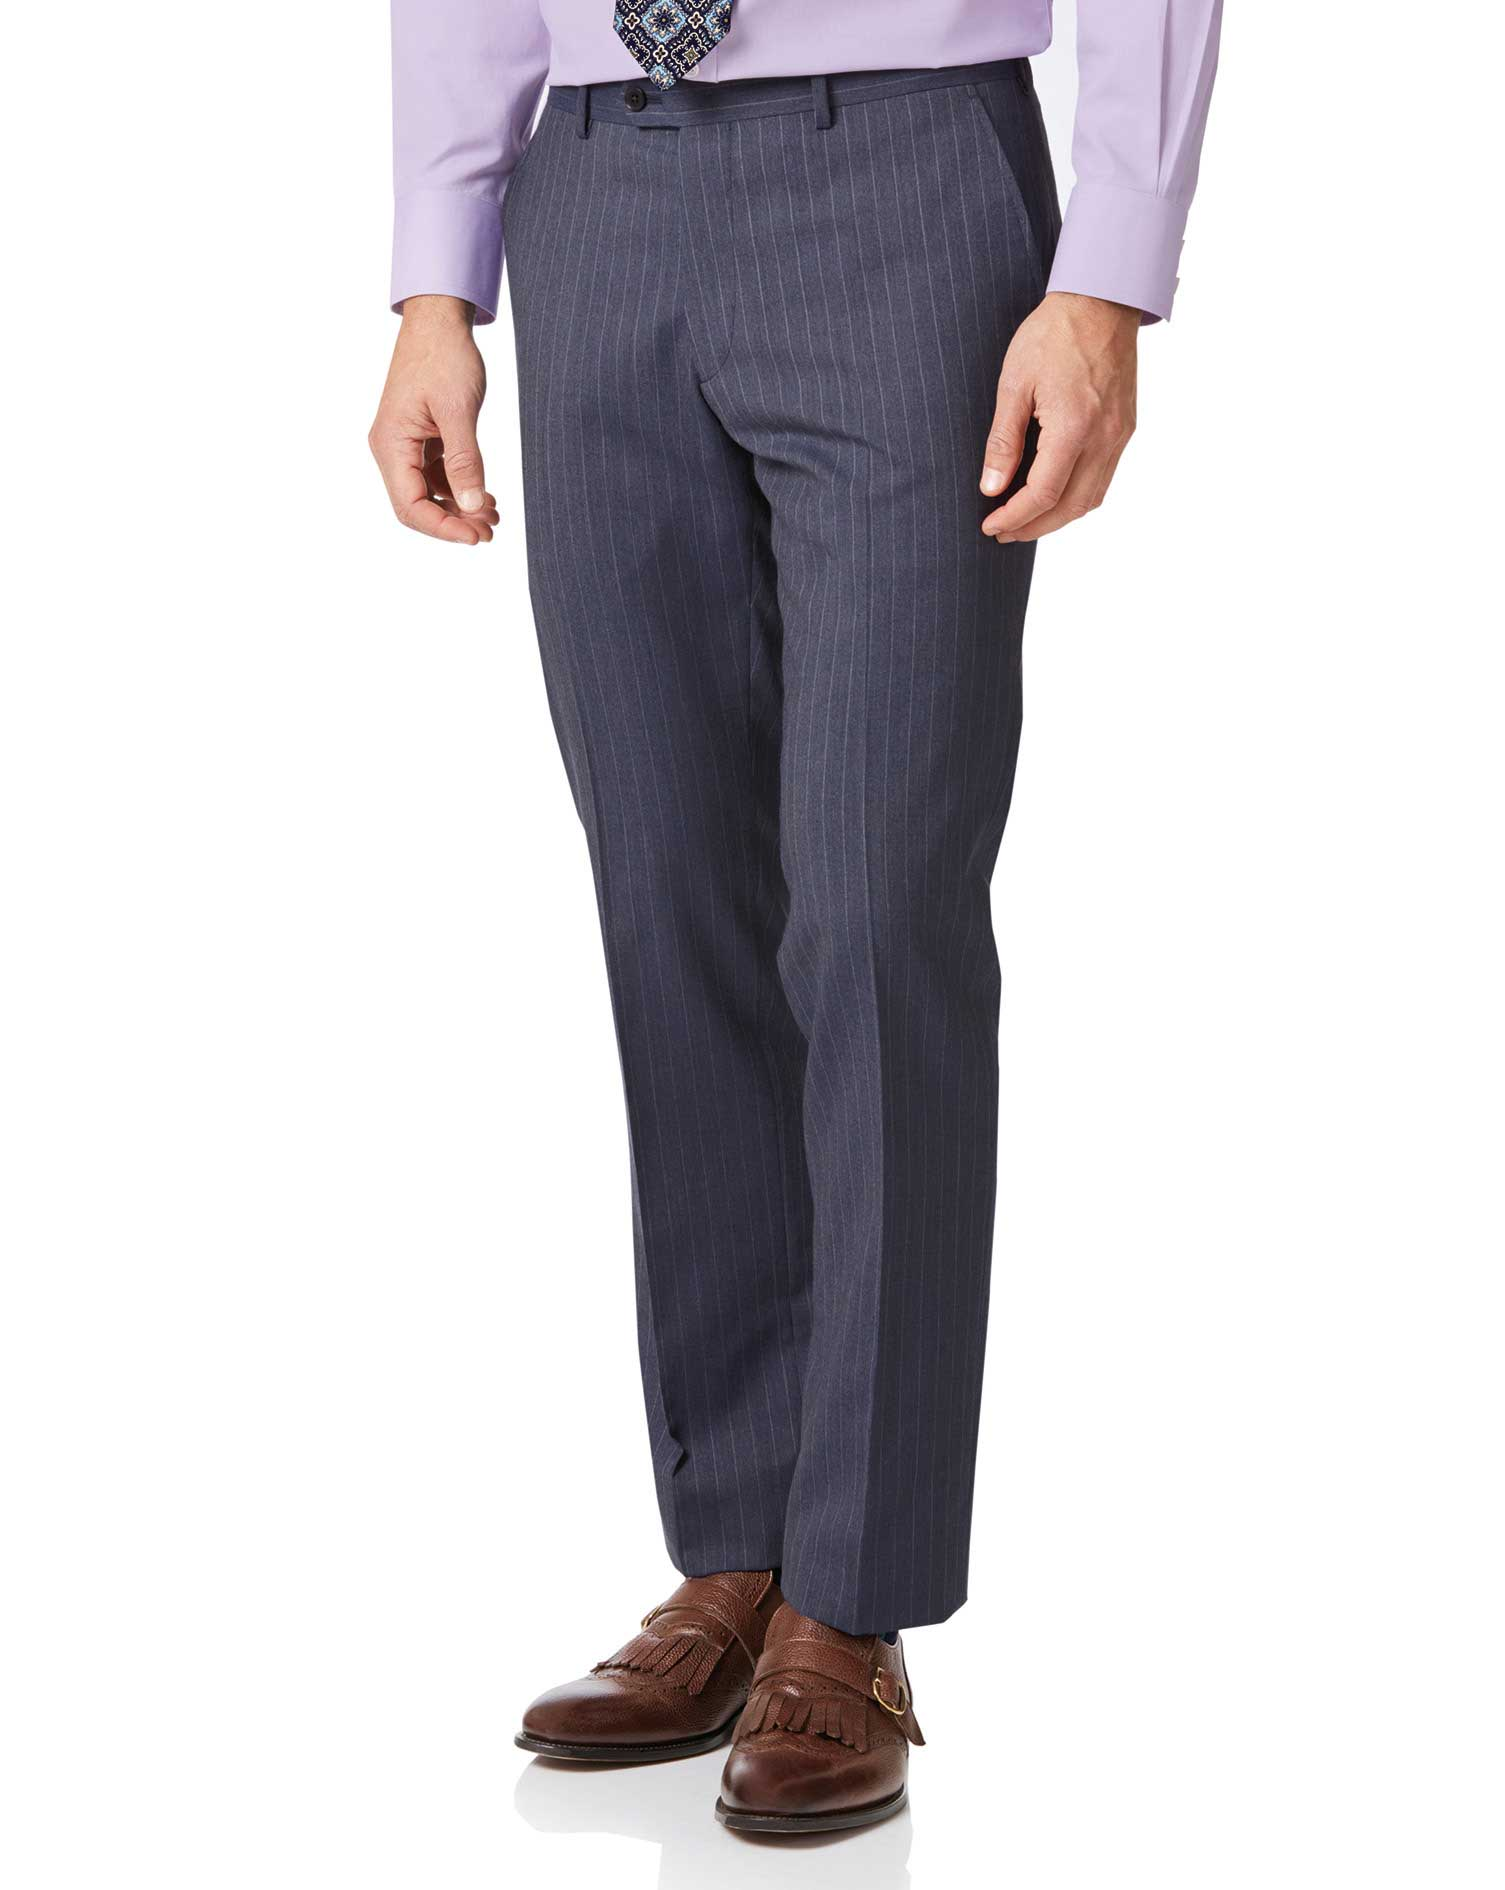 Airforce Stripe Classic Fit Panama Business Suit Trouser Size W36 L38 by Charles Tyrwhitt